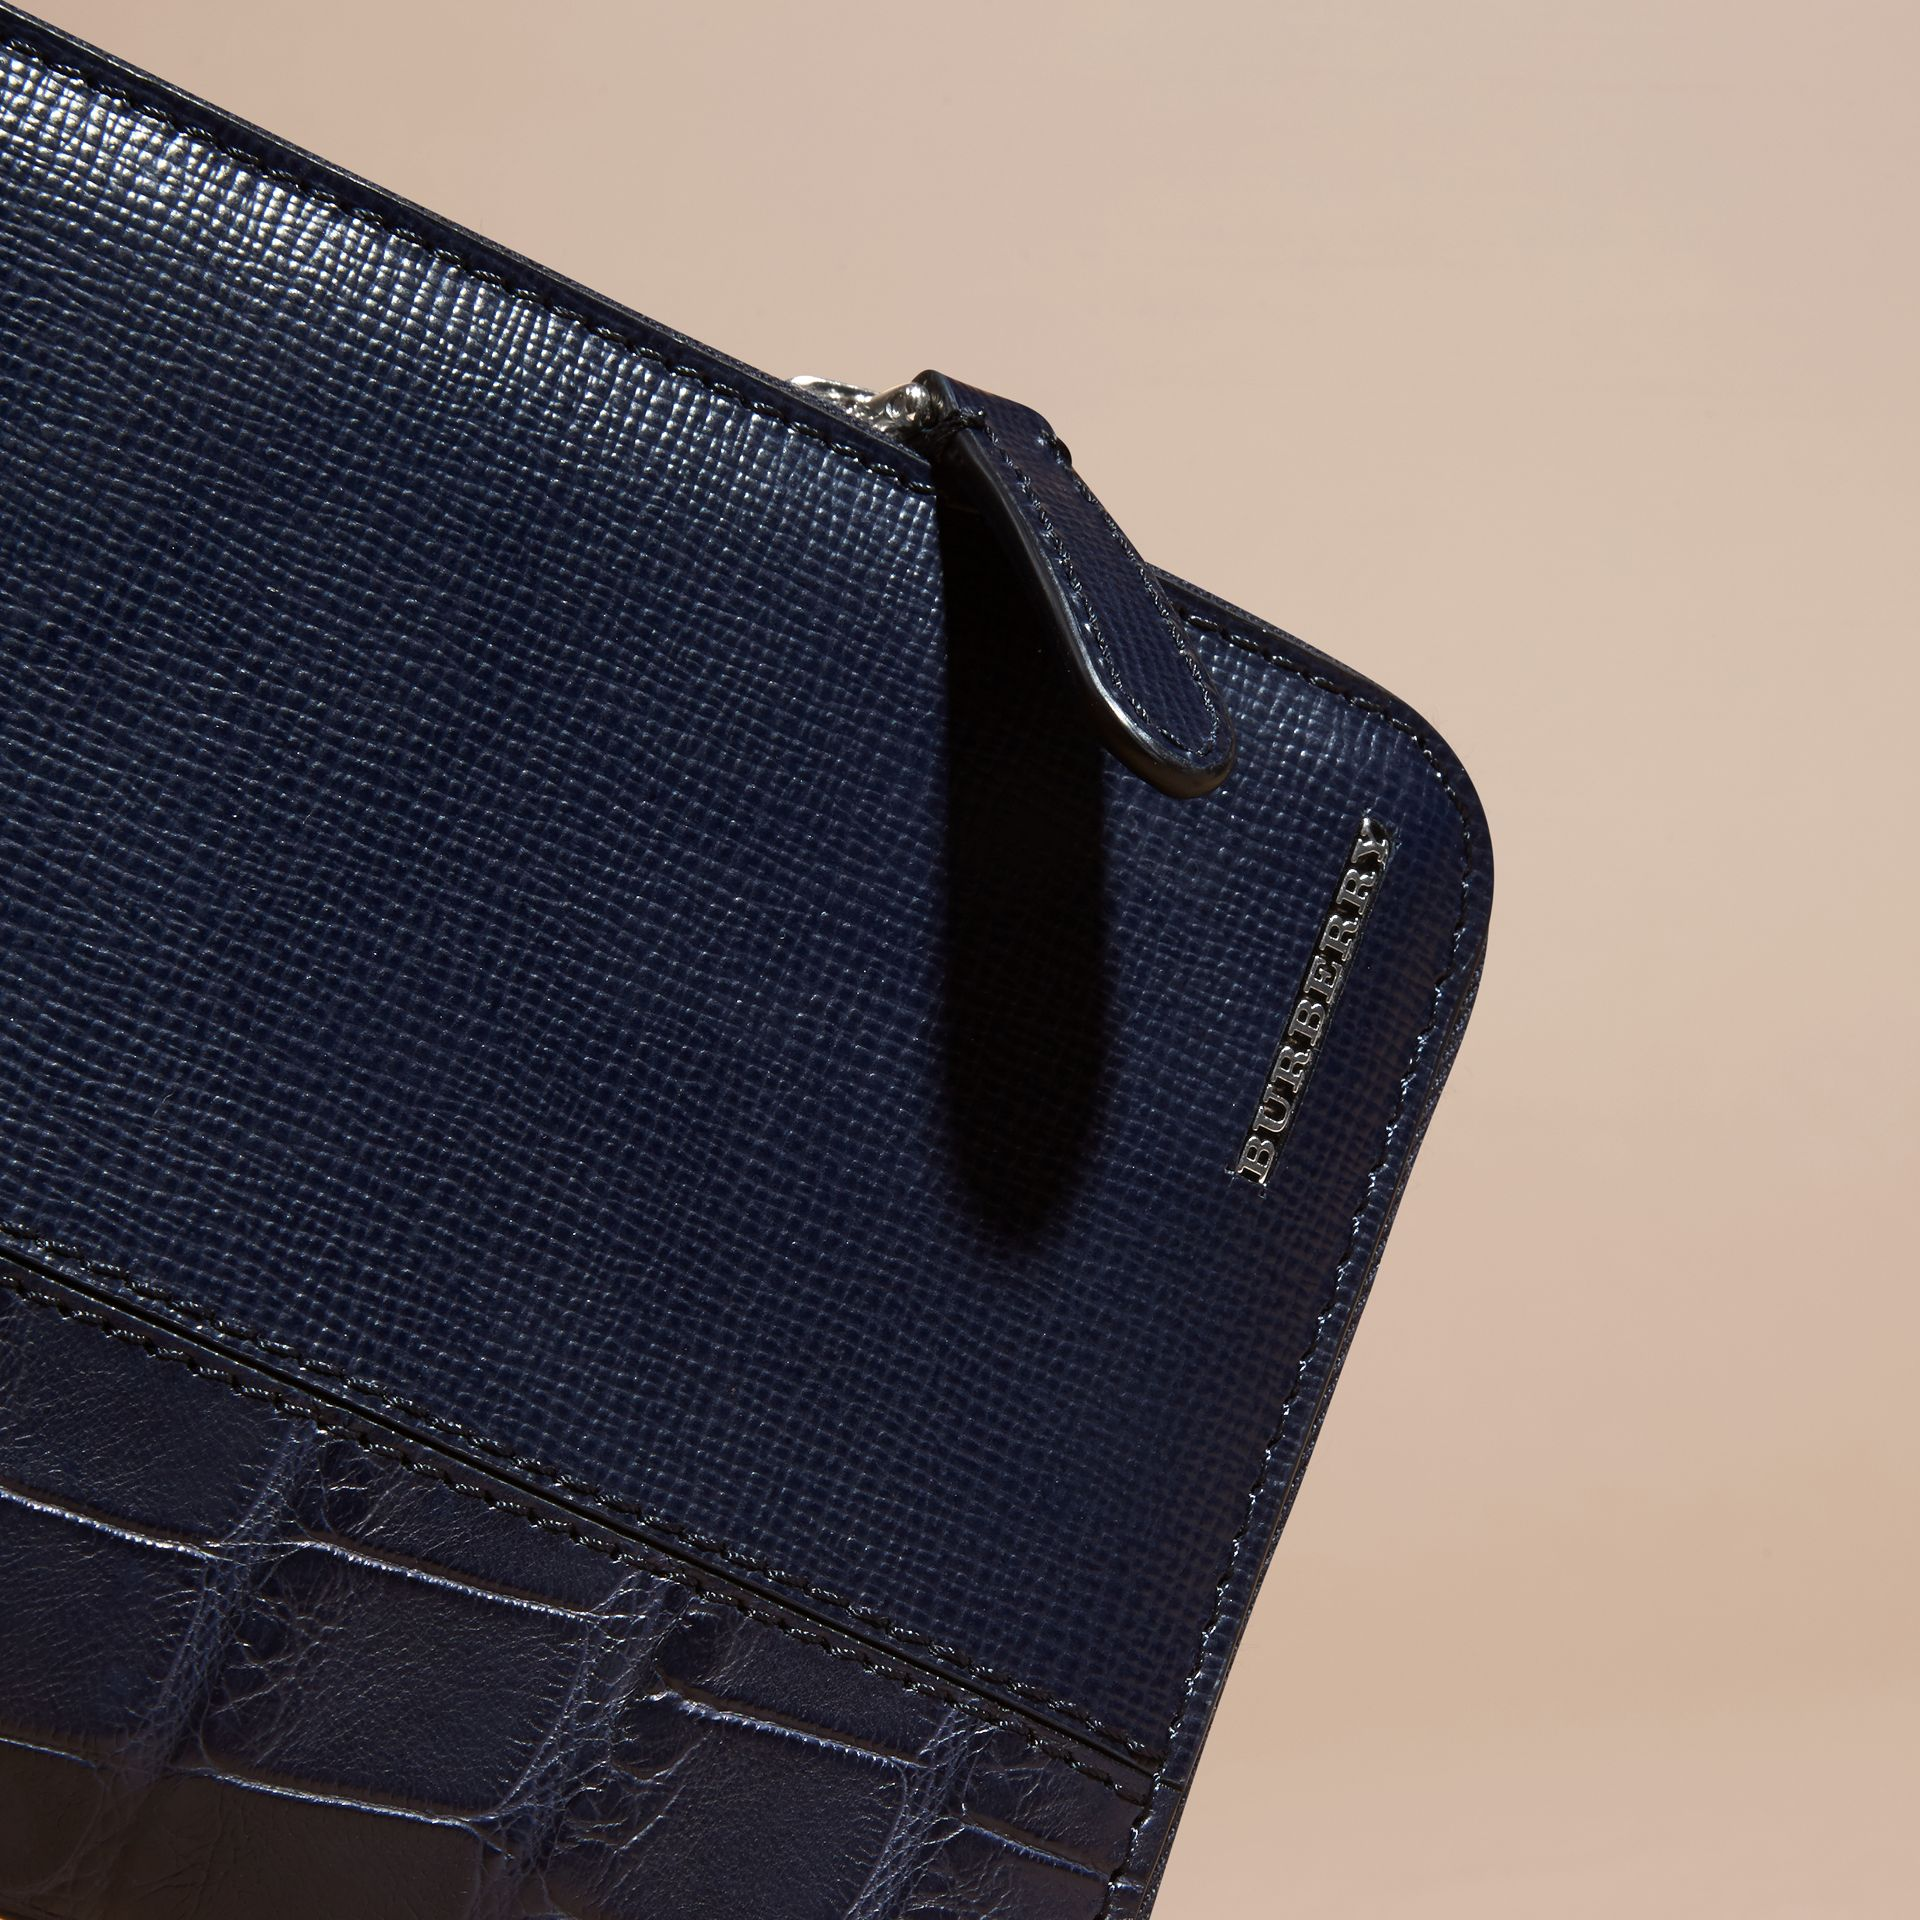 Dark navy London Leather and Alligator Ziparound Wallet Dark Navy - gallery image 2